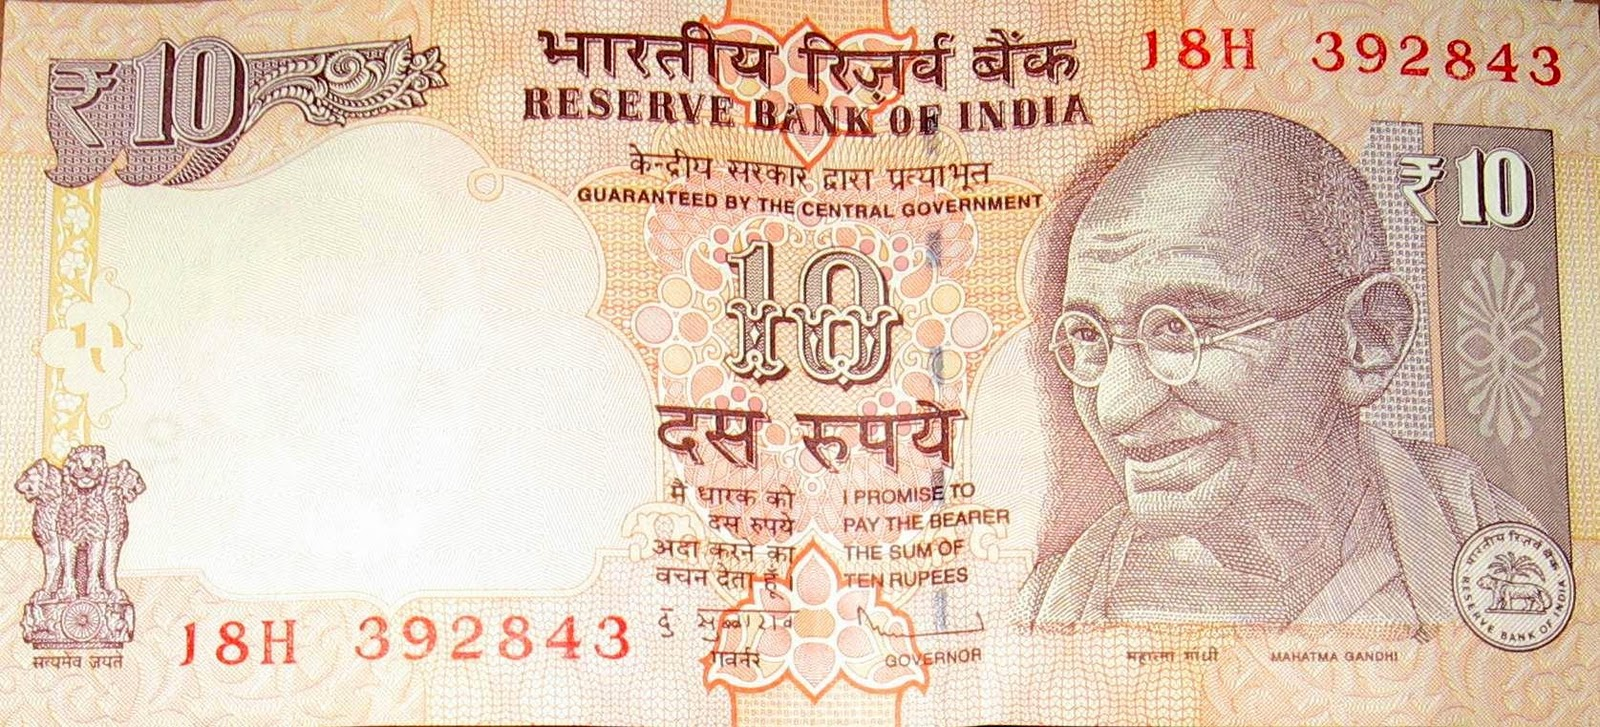 1 how much rupee / Peoples bank al